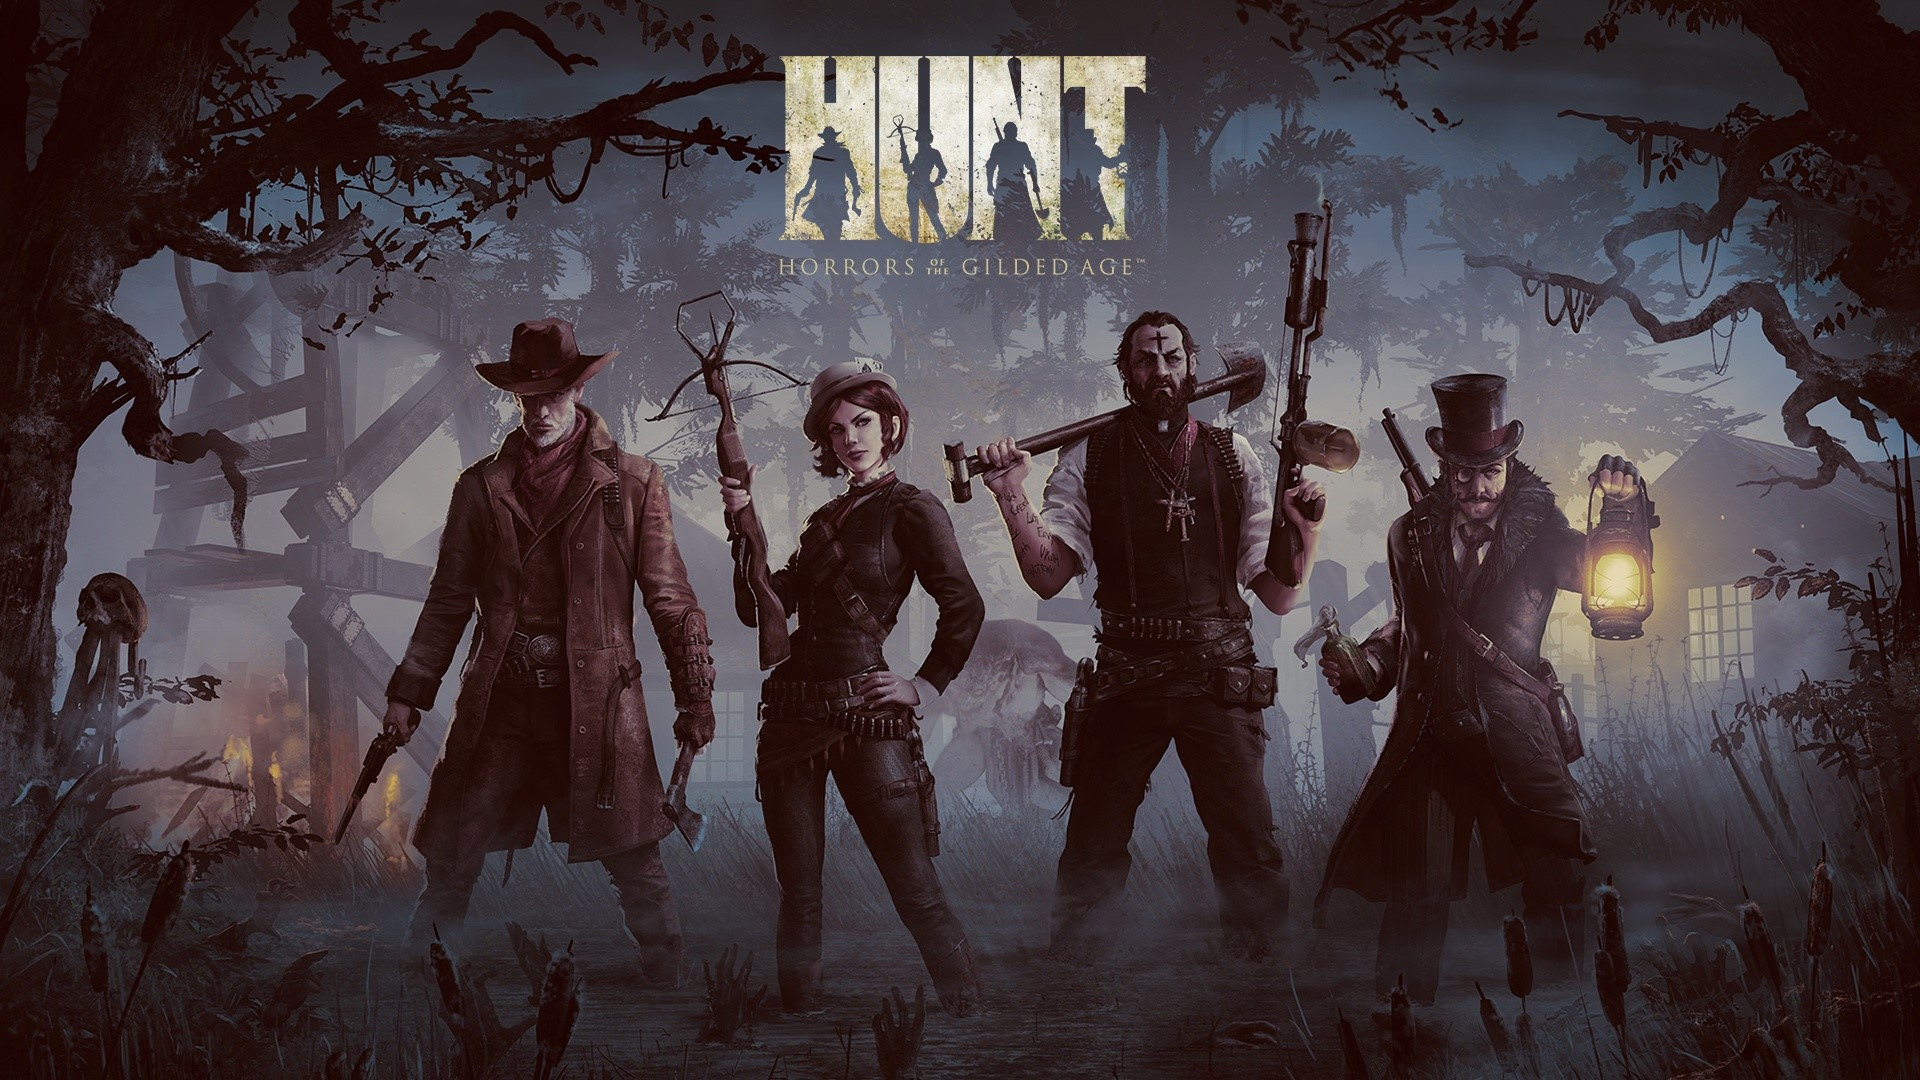 Fondos de pantalla Hunt Horrors of gilded Age